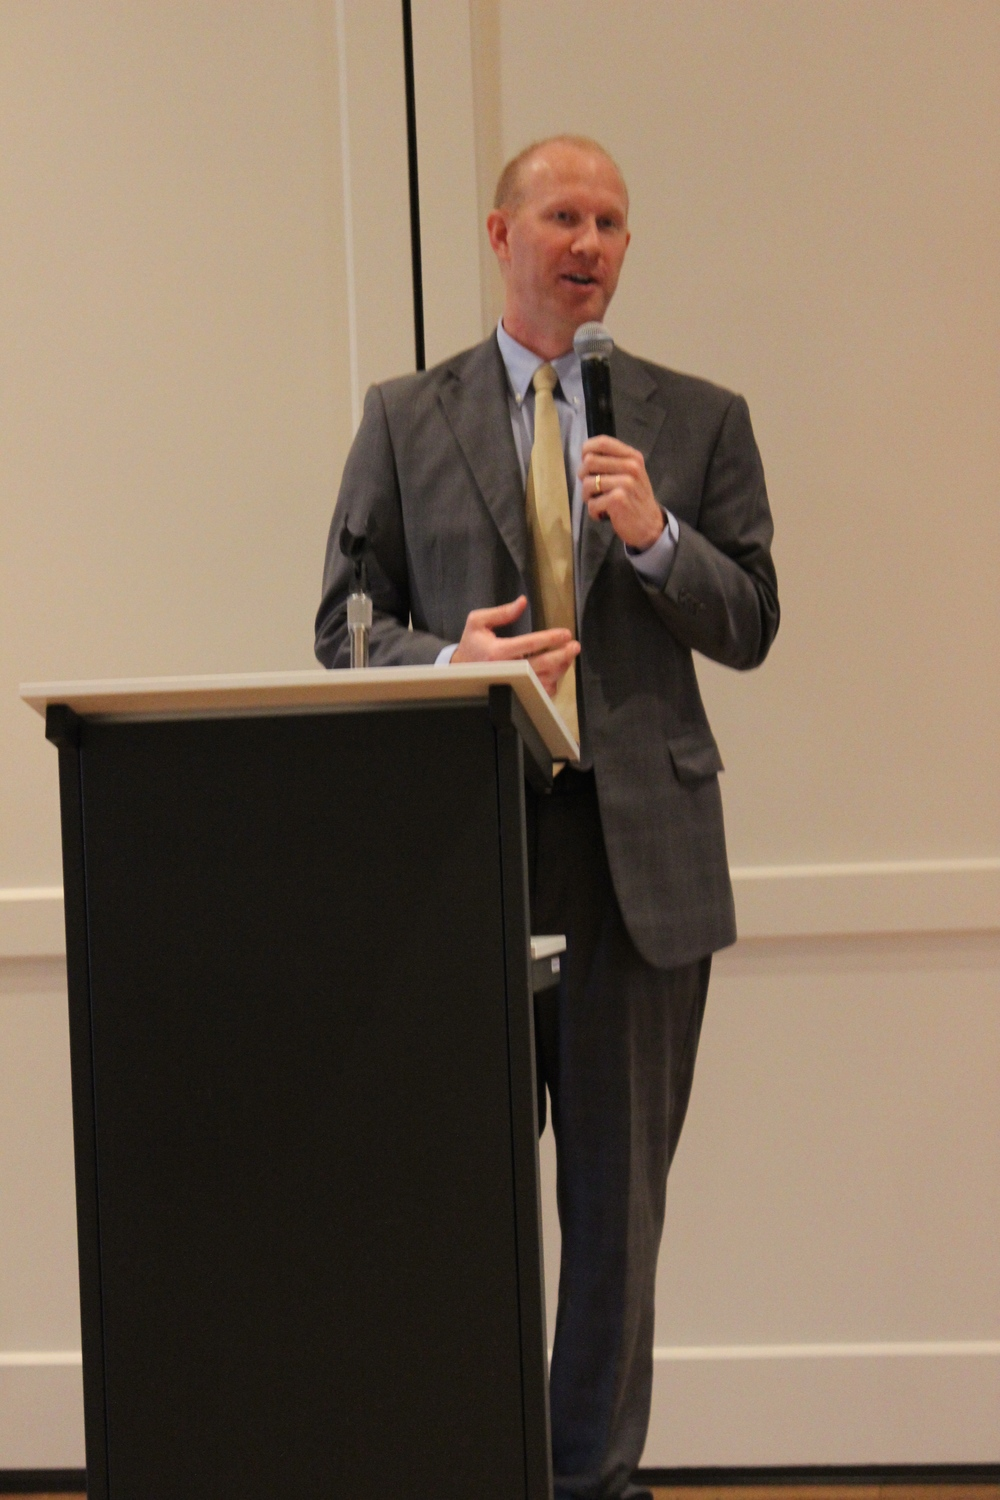 Kirk Craig, Agape's Director, gave an encouraging update about the work and vision of Agape Development.